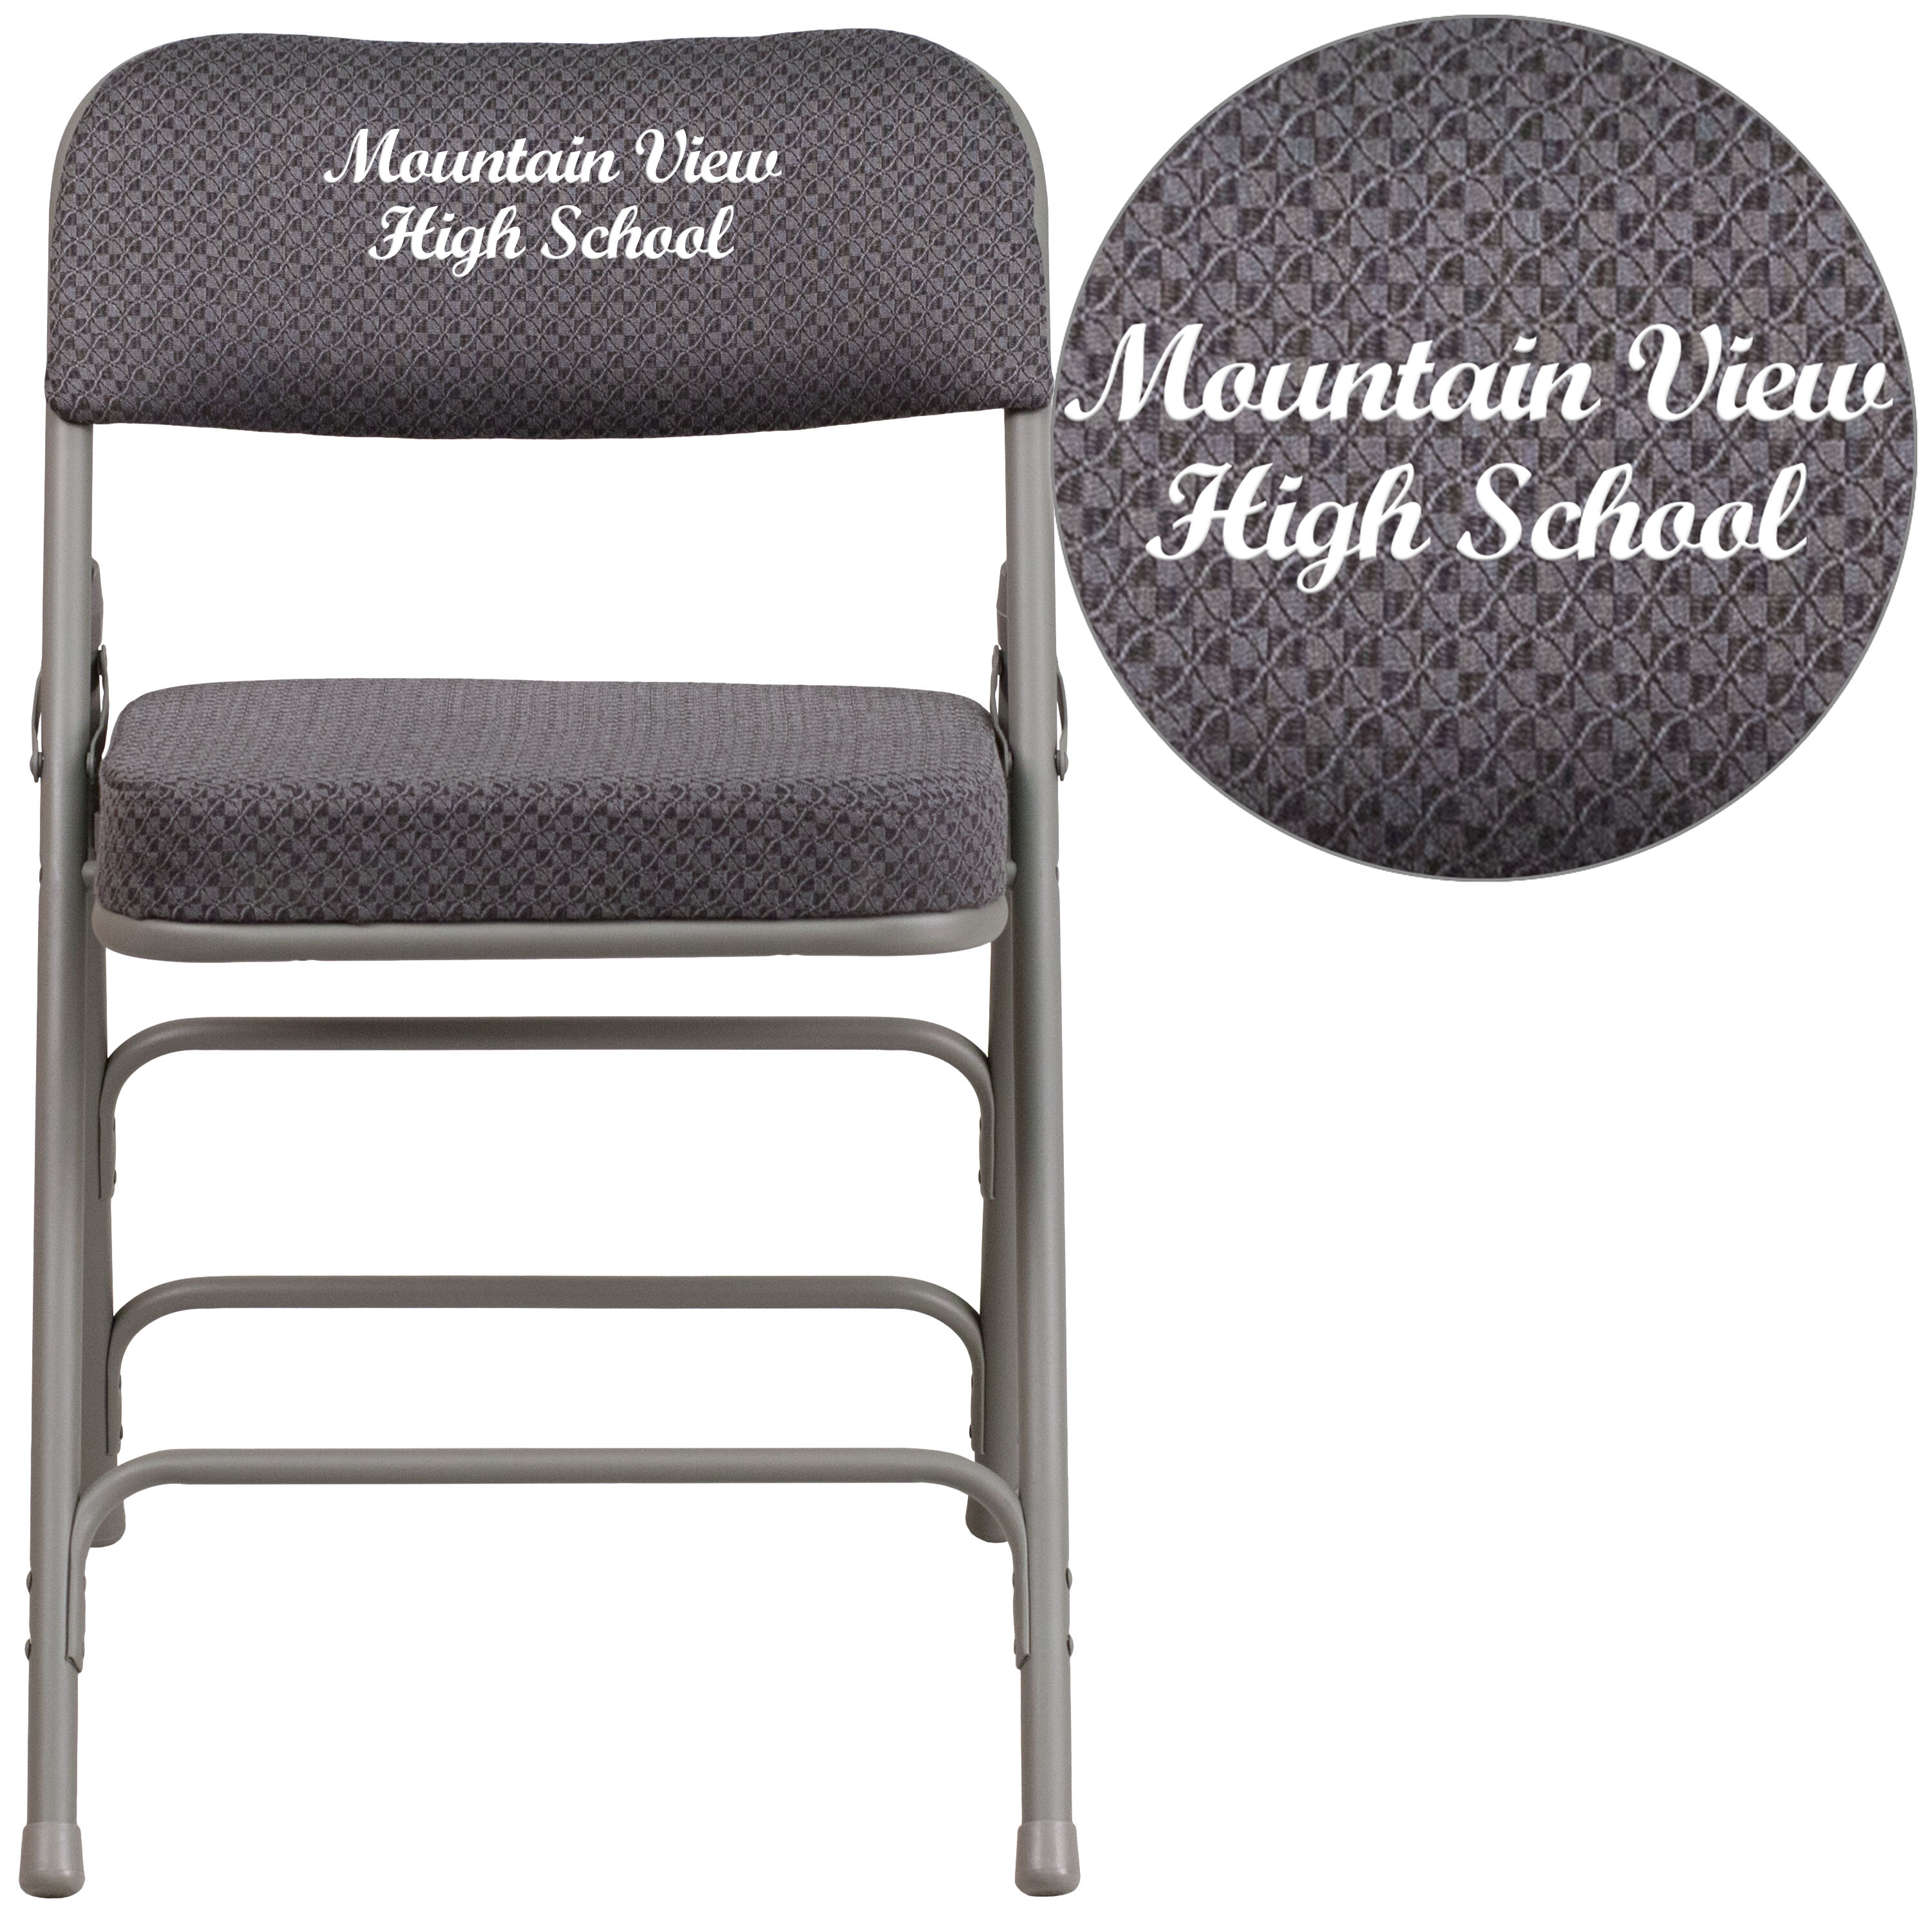 folding chair embroidered chairs living room gray fabric aw mc320af gry emb gg